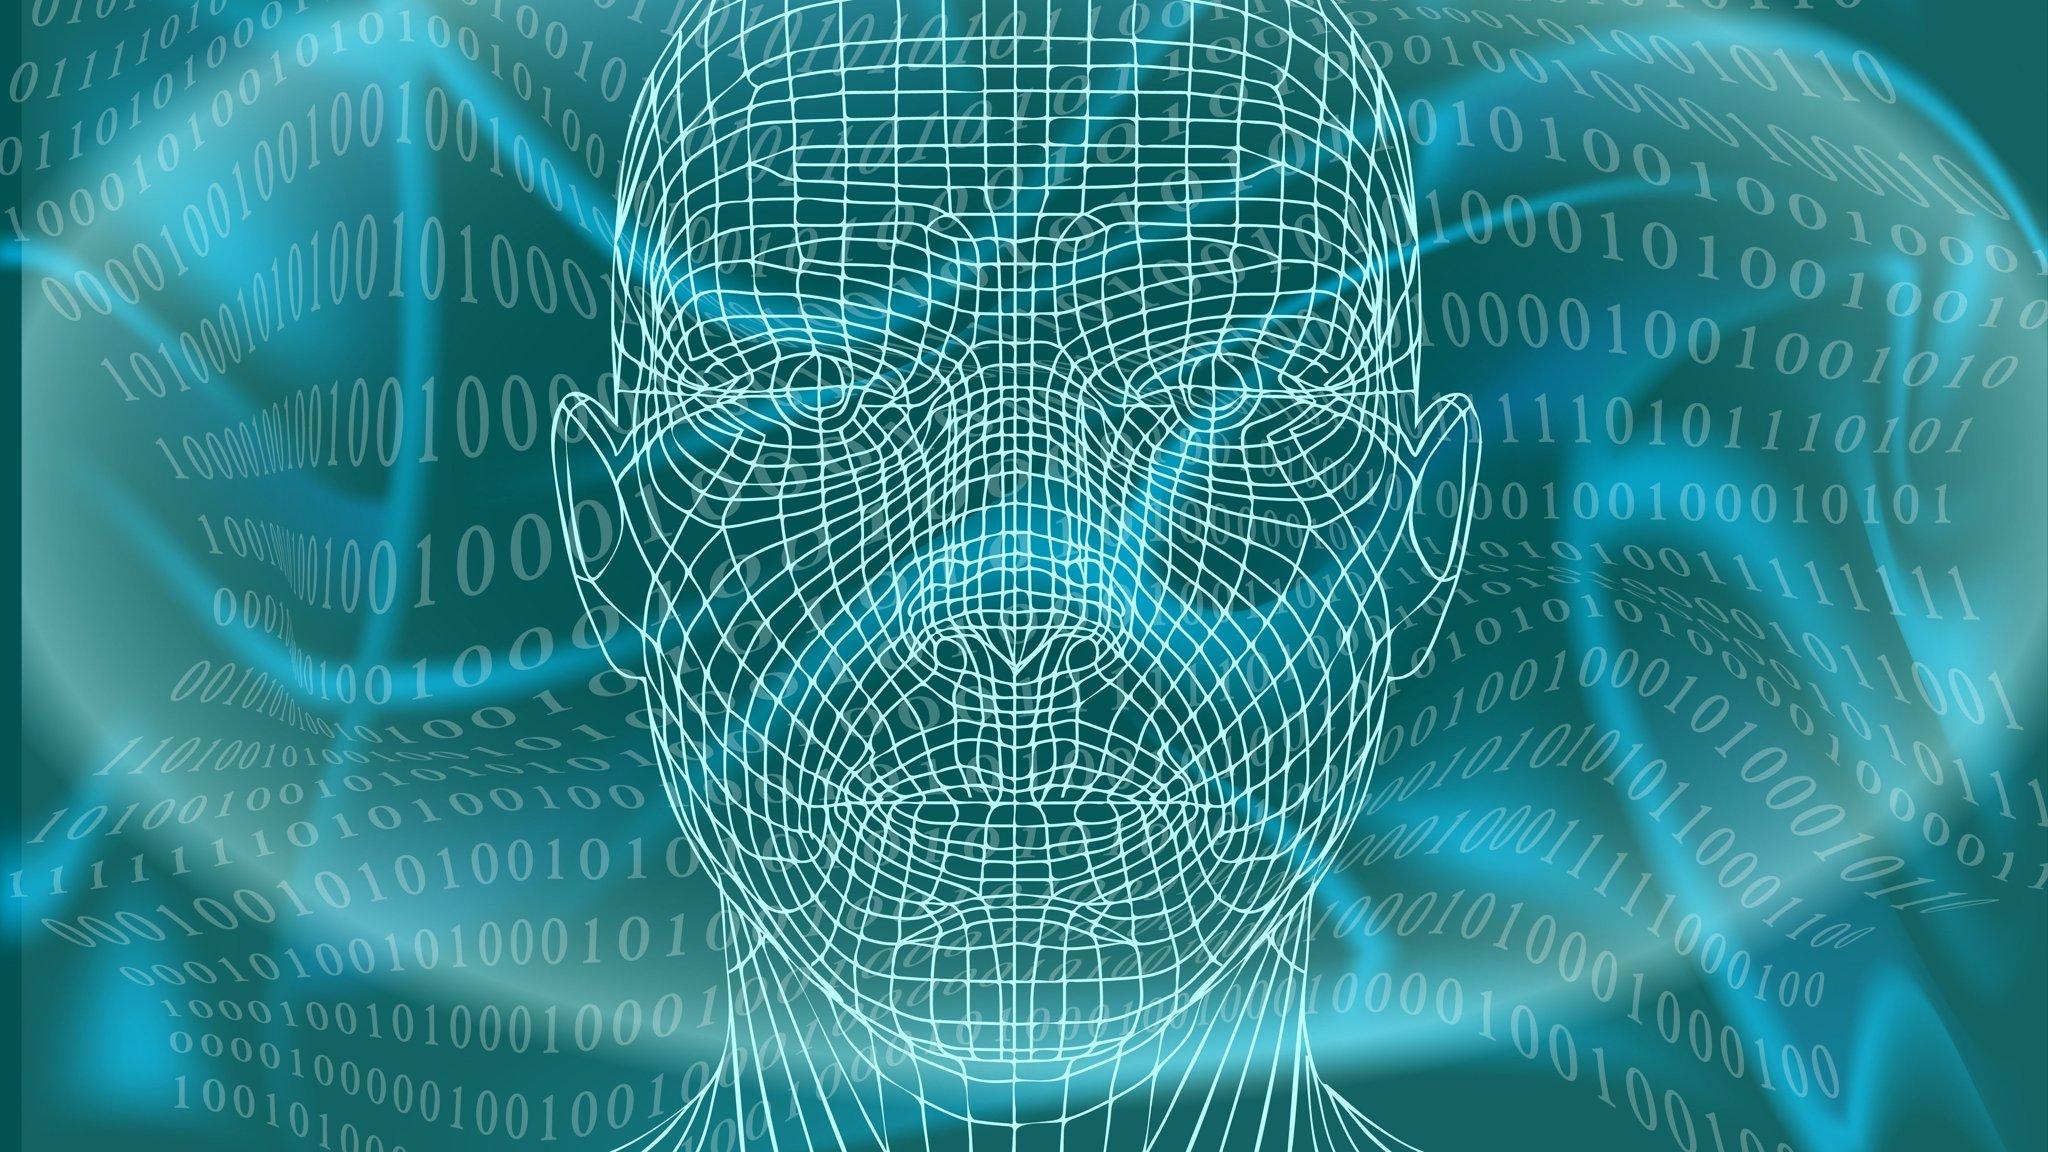 Britain Urged To Take Ethical Advantage In Artificial Intelligence